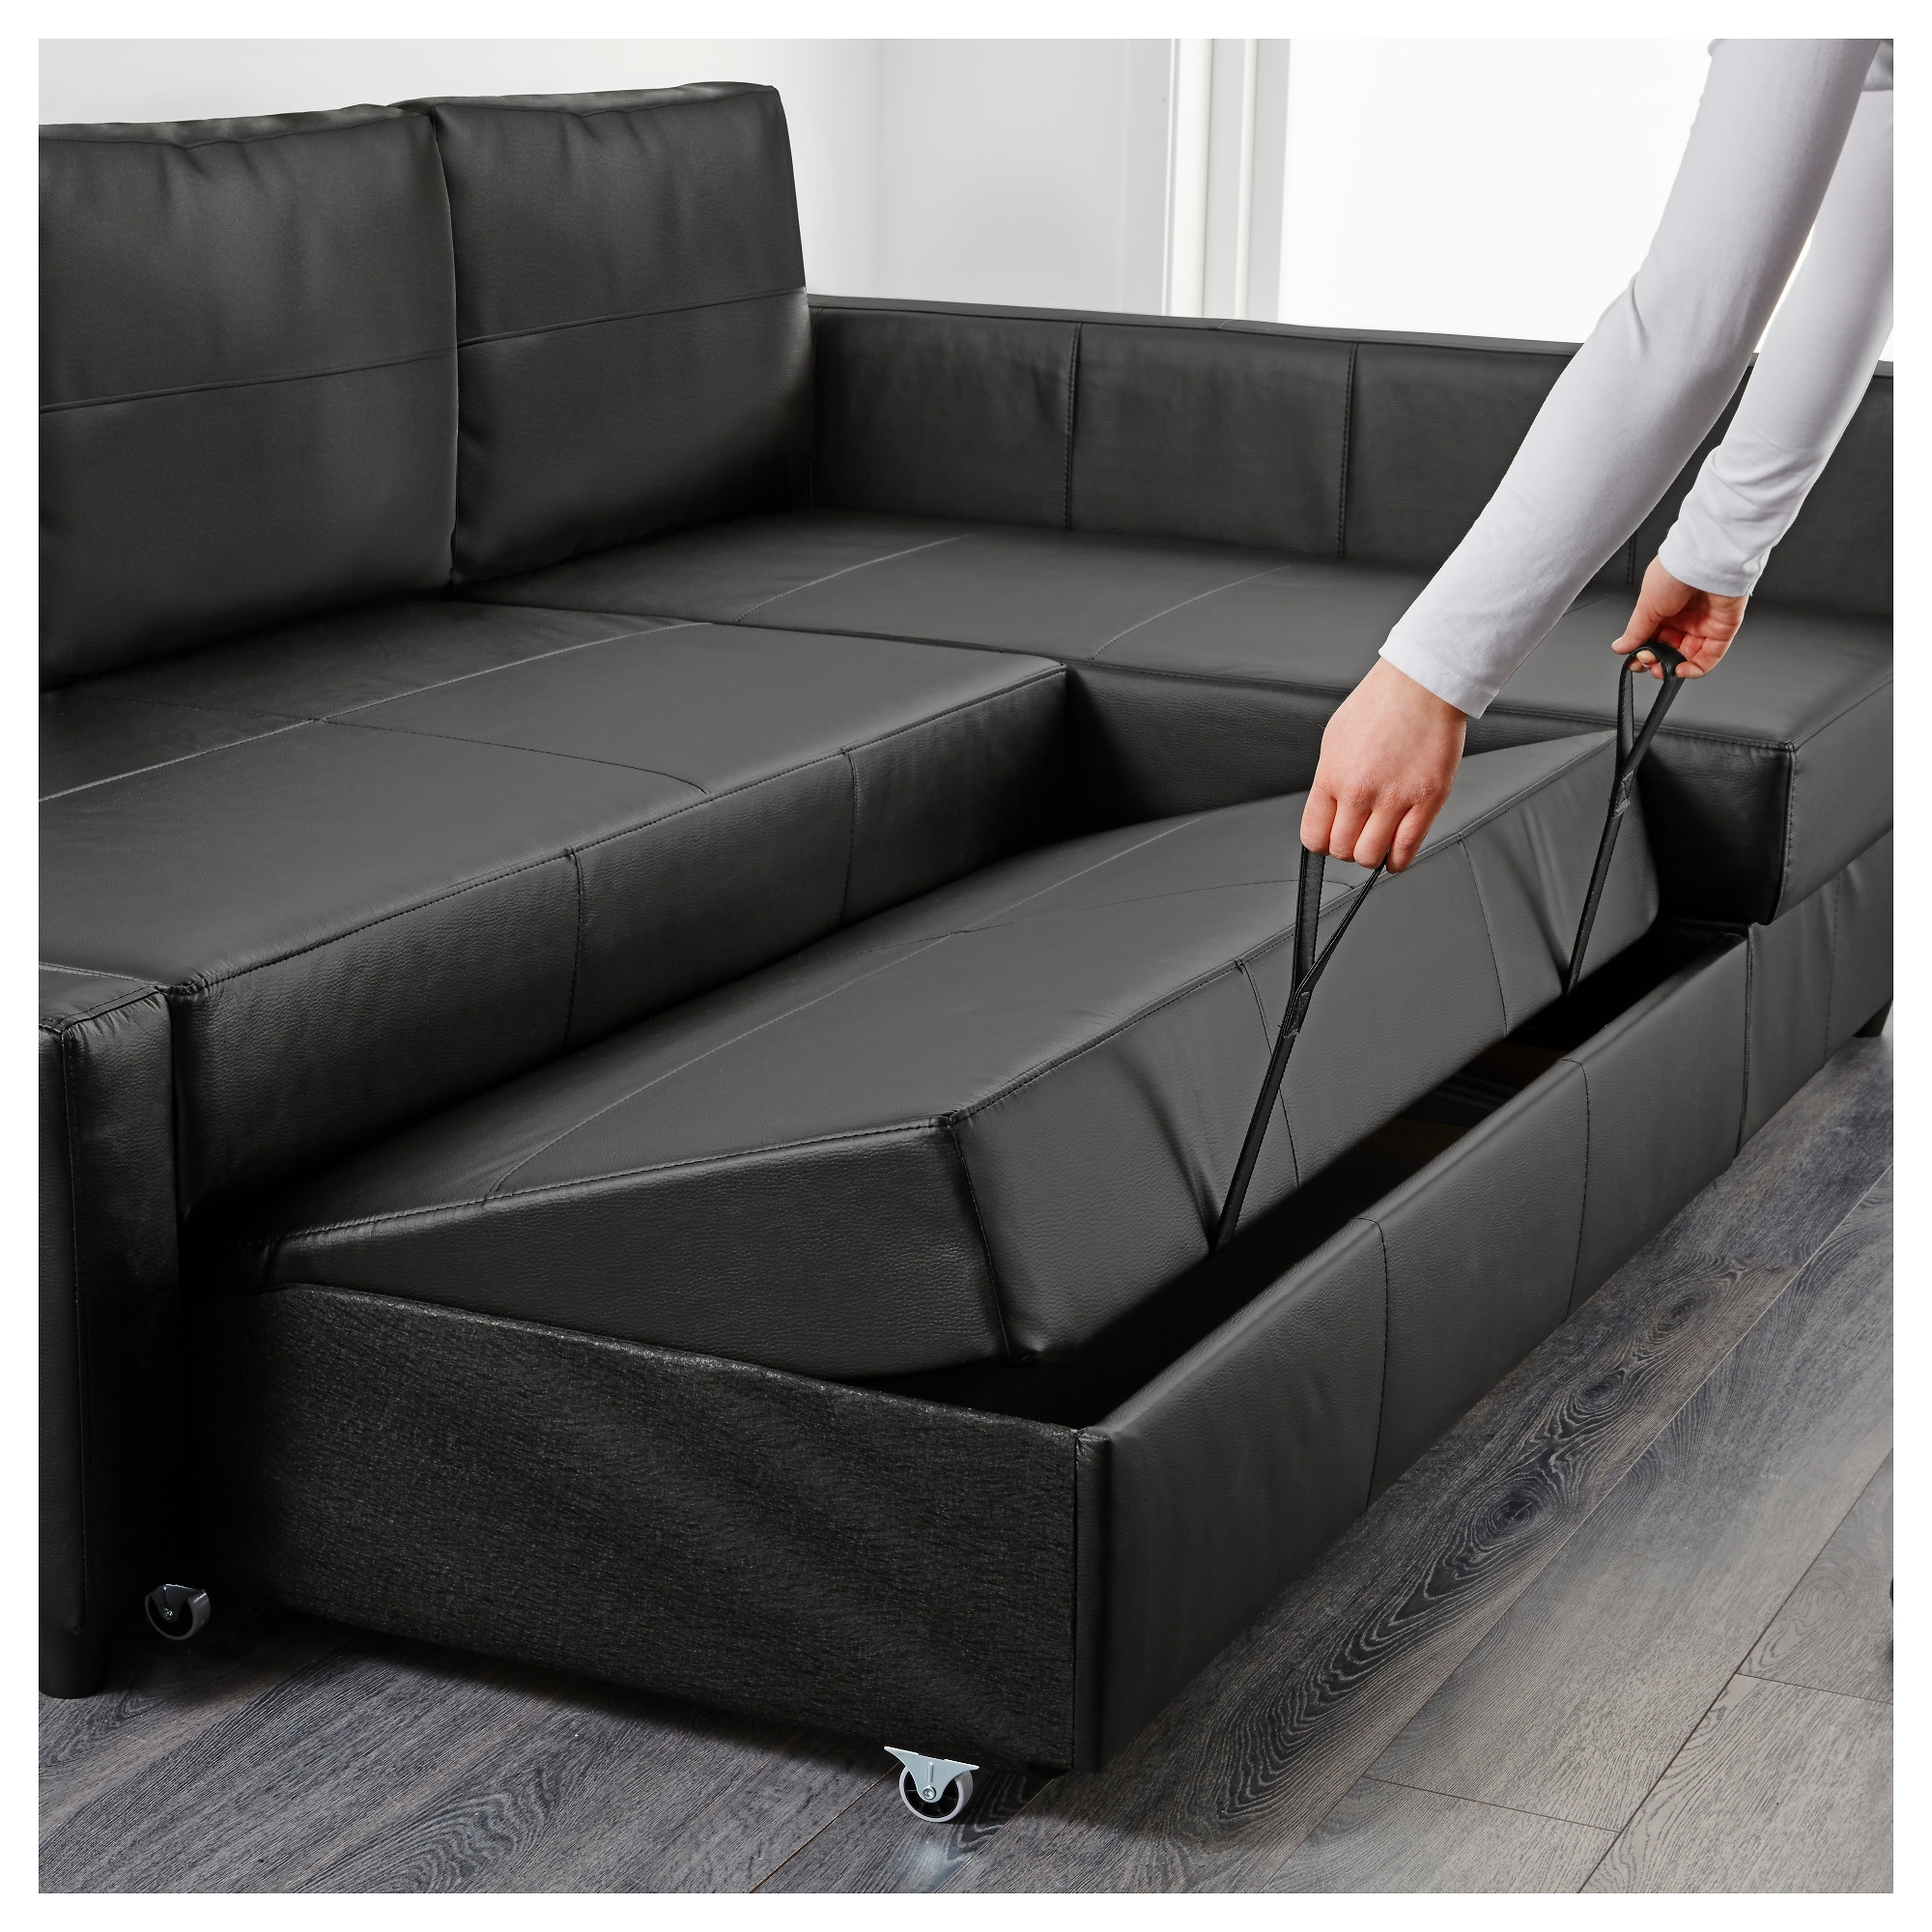 Friheten Corner Sofa Bed With Storage Bomstad Black – Ikea Regarding Most Recent Ikea Corner Sofas With Storage (View 3 of 20)